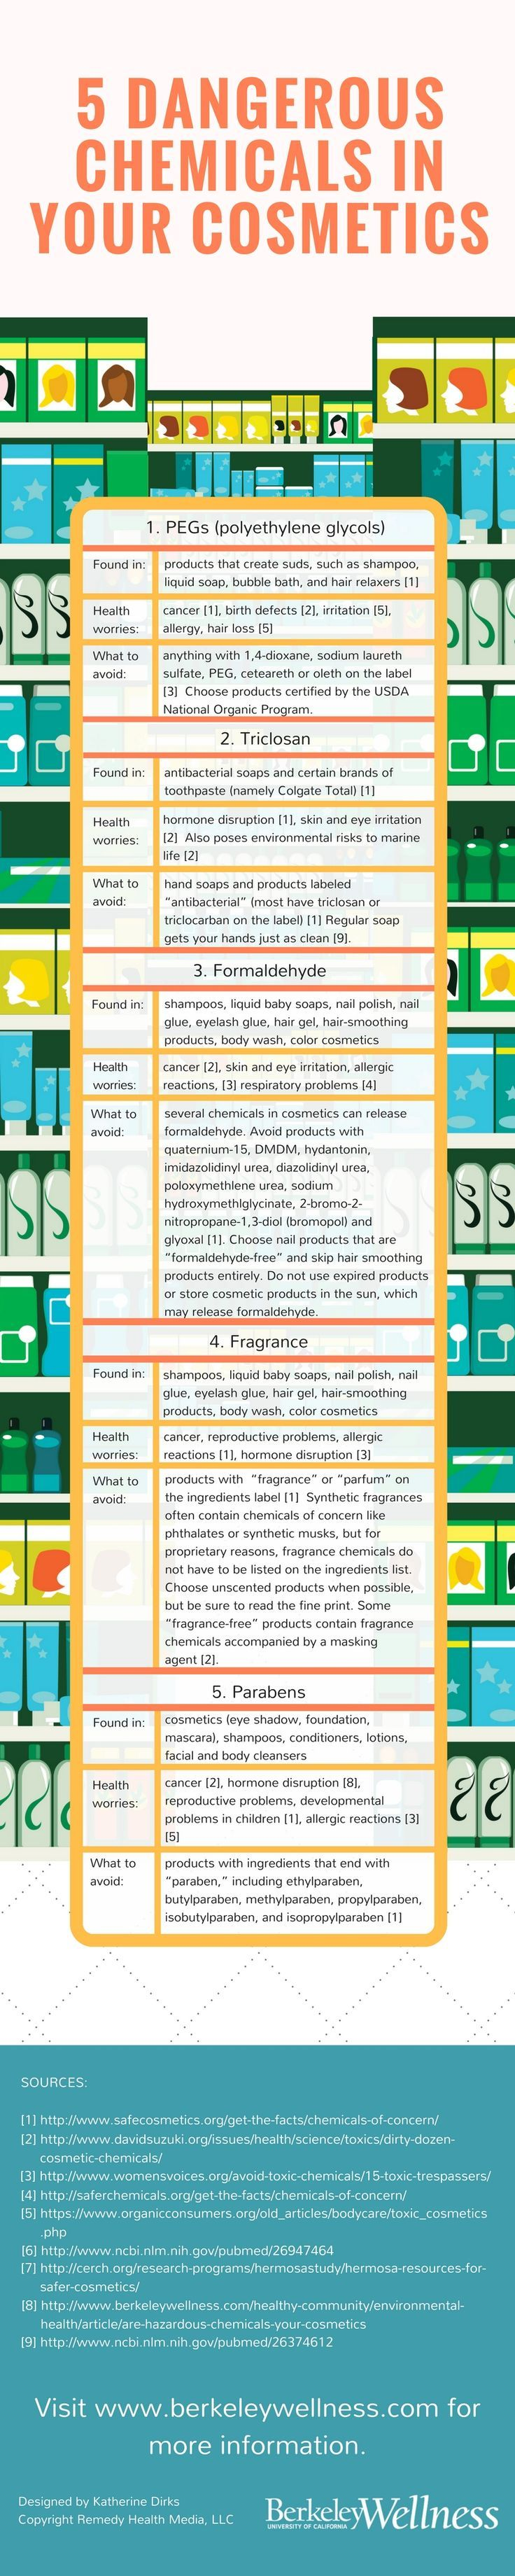 5 Dangerous Chemicals in Cosmetics and Personal Care